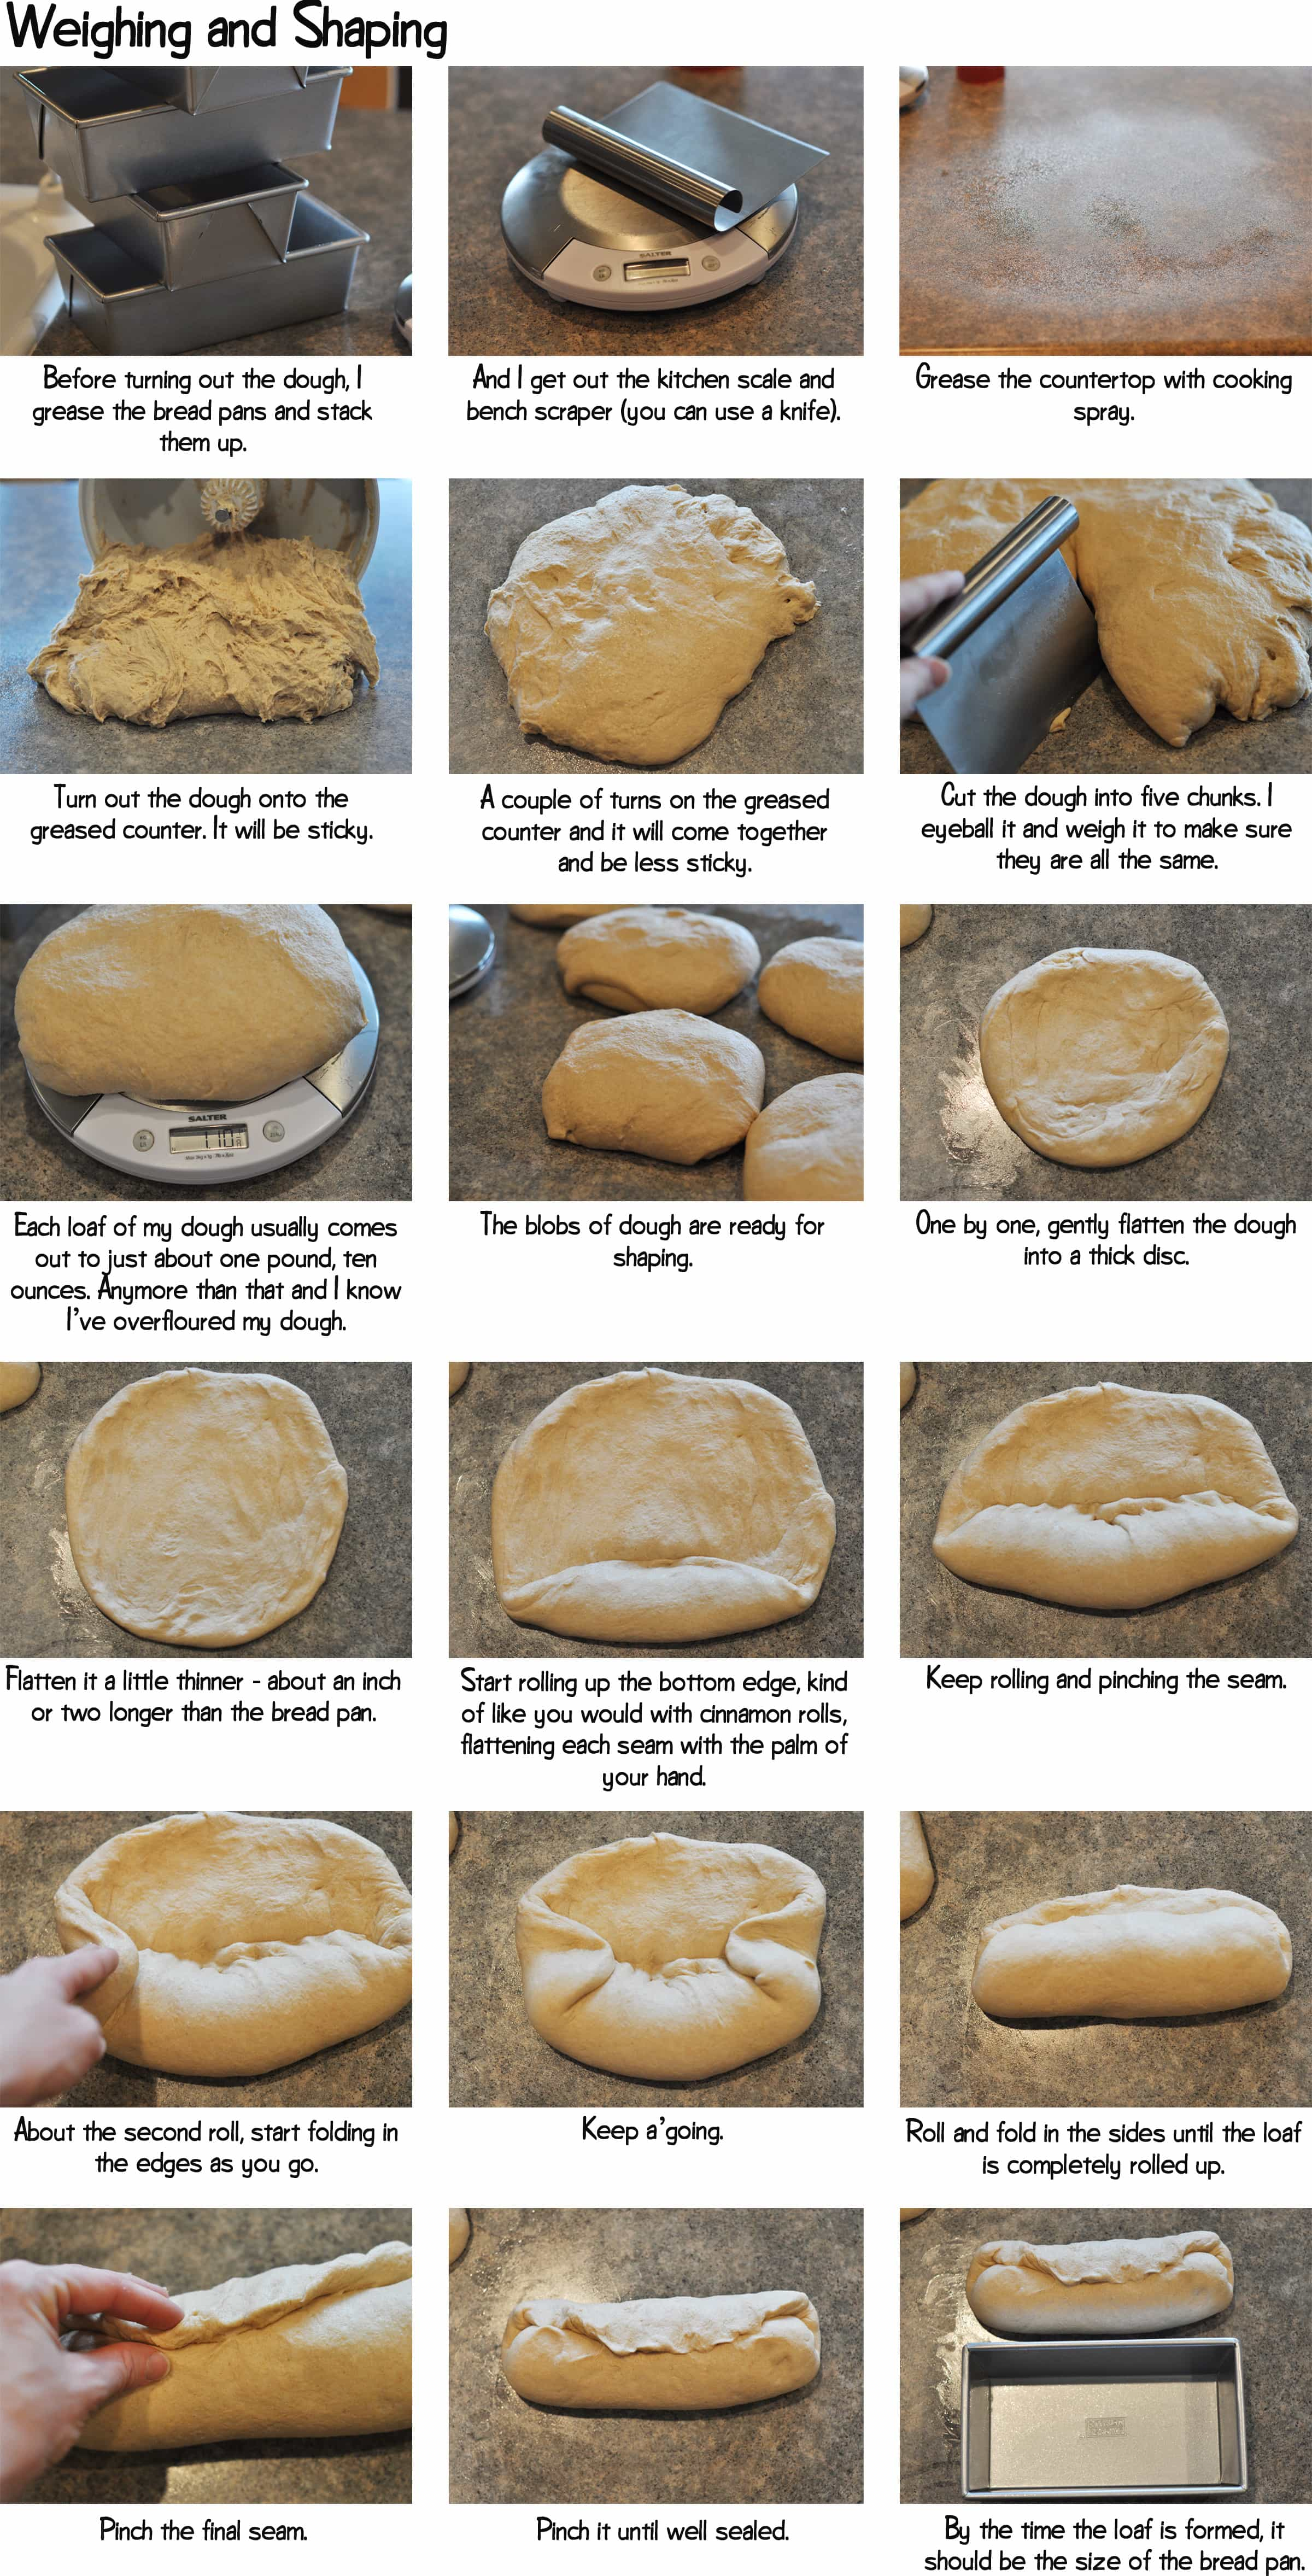 step-by-step photos of weighing and shaping bread dough